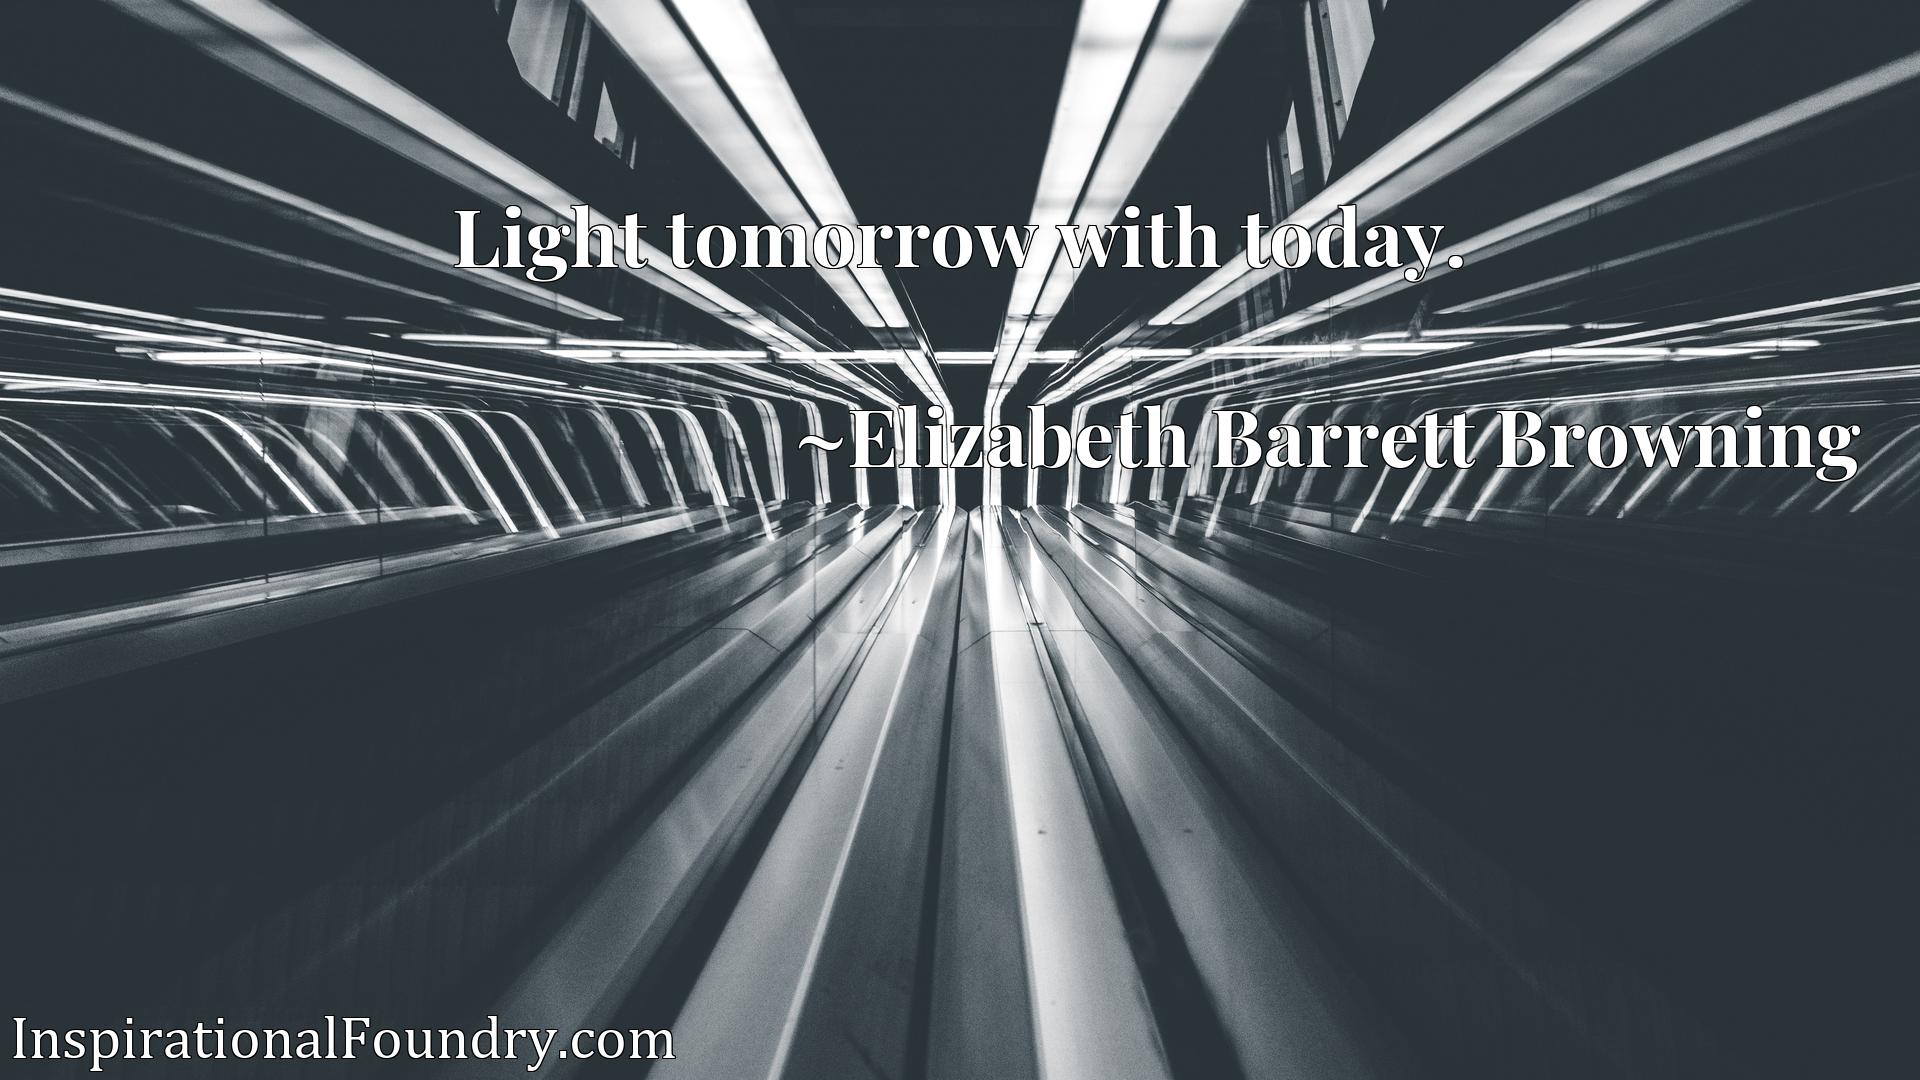 Quote Picture :Light tomorrow with today.